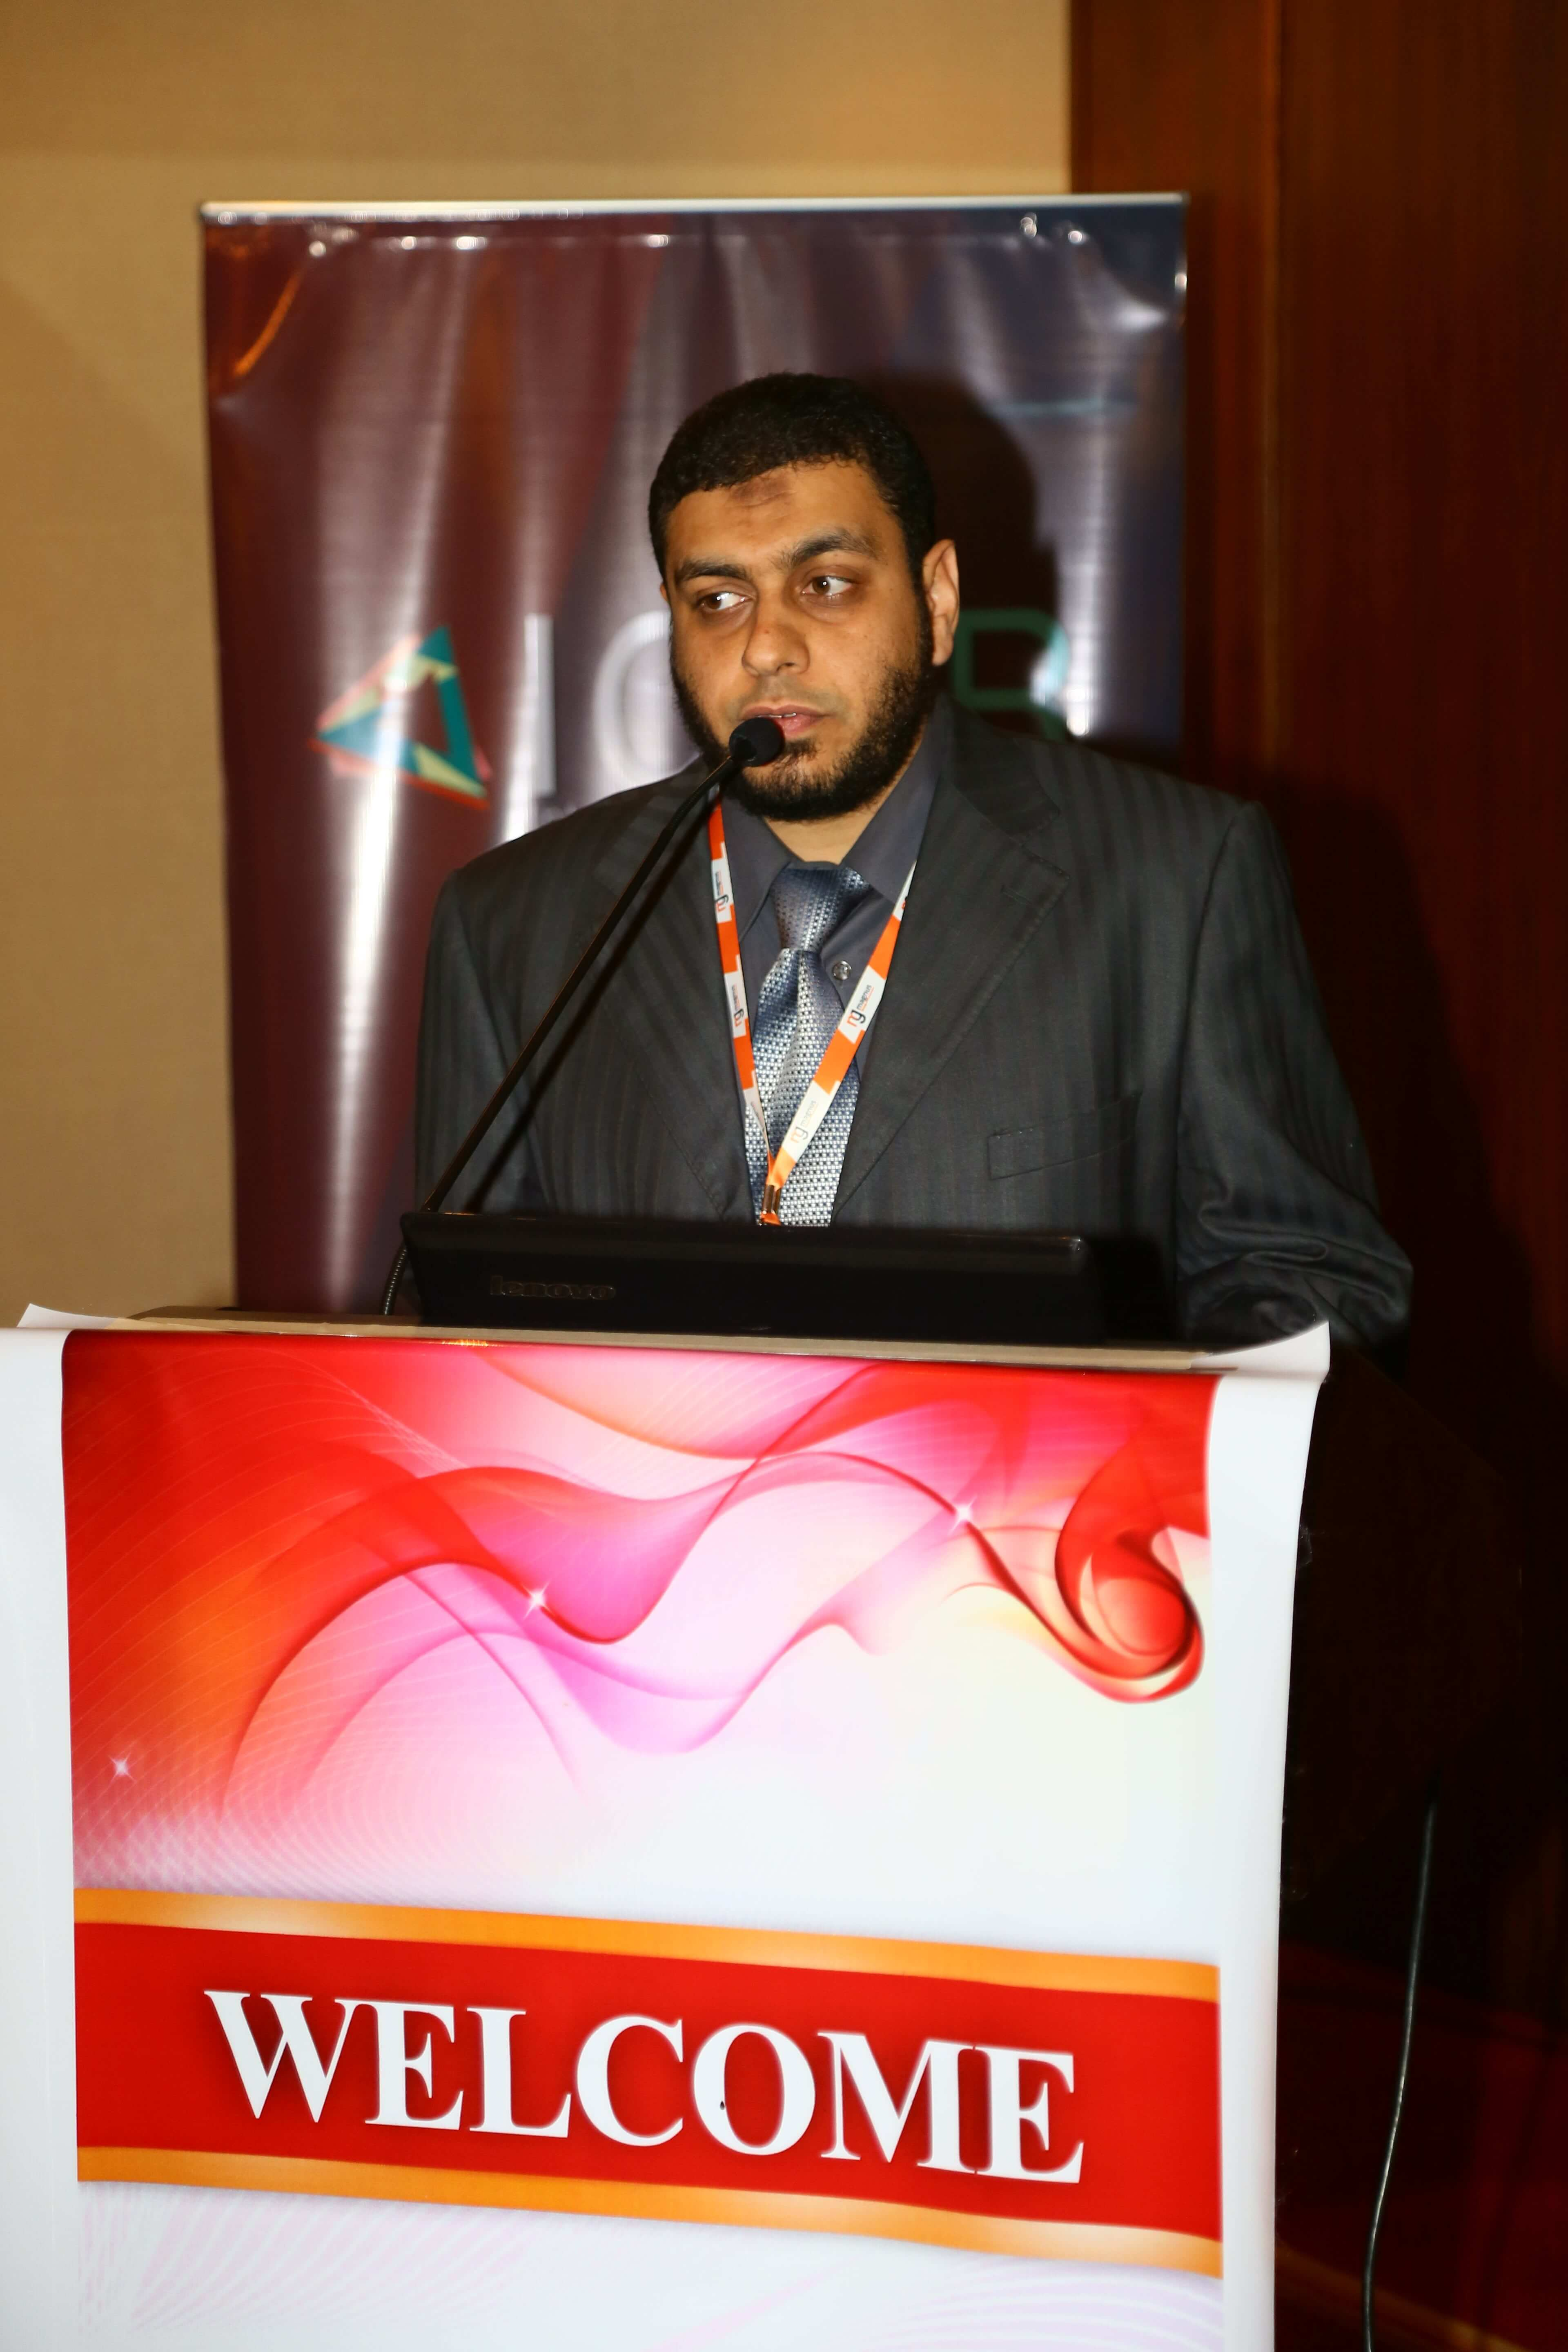 Cancer research conferences - Dr. Mahmoud Rezk